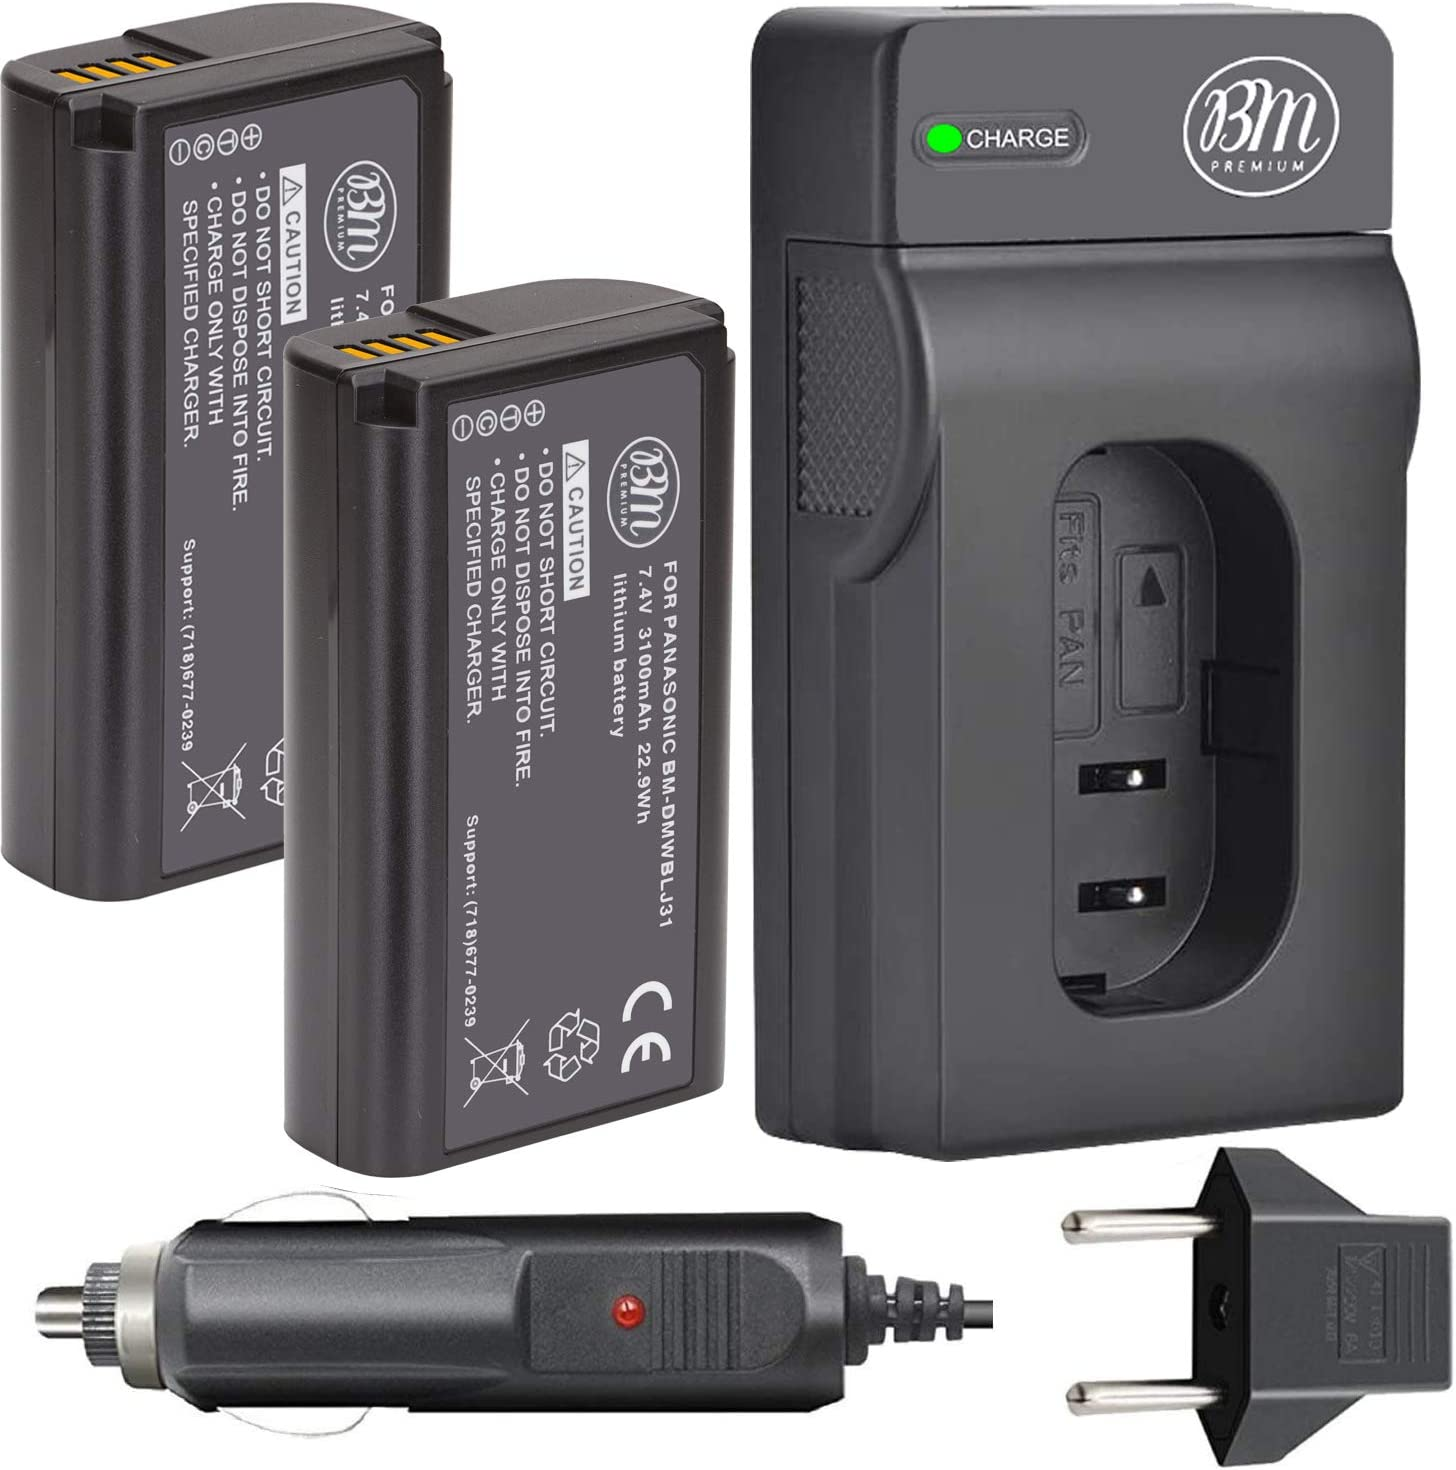 BM Finally popular brand Premium 2 Pack of DMW-BLJ31 safety for and Battery Charger Batteries